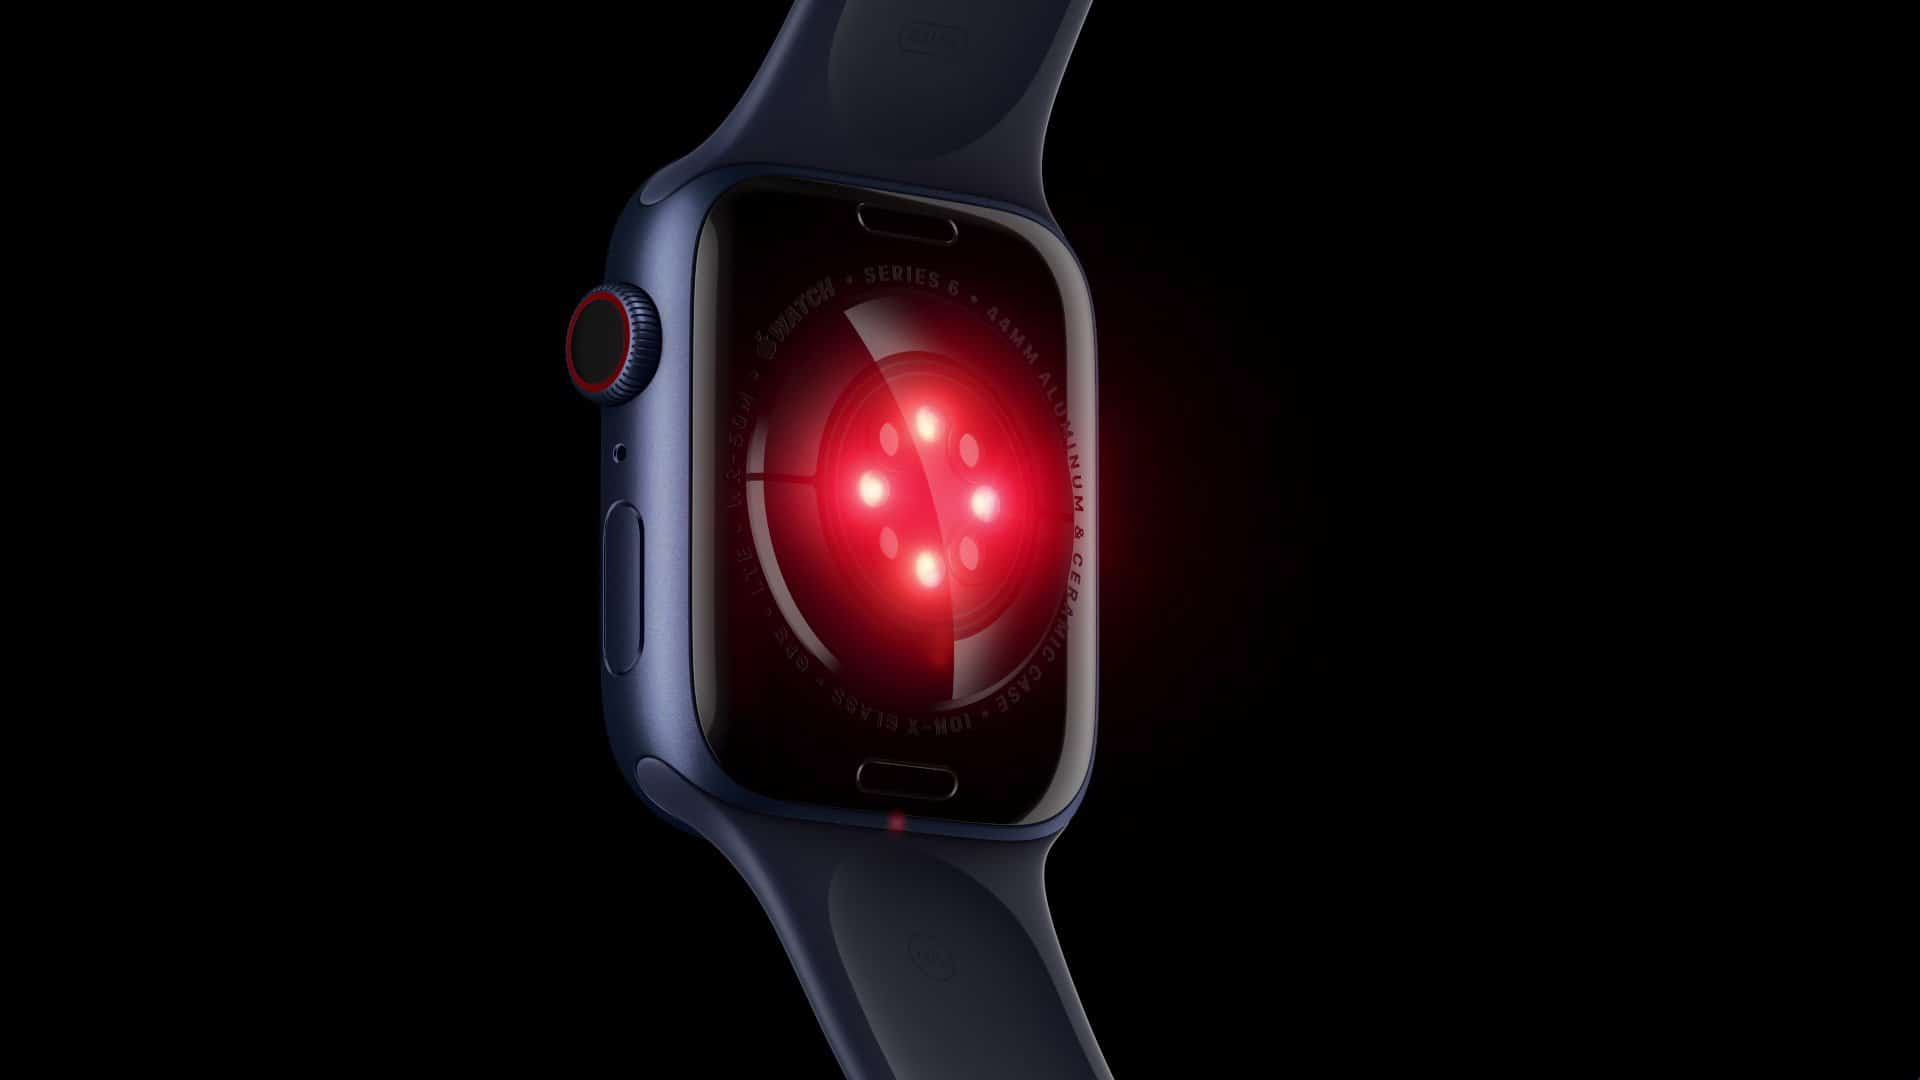 Sensor óptico do Apple Watch Series 6